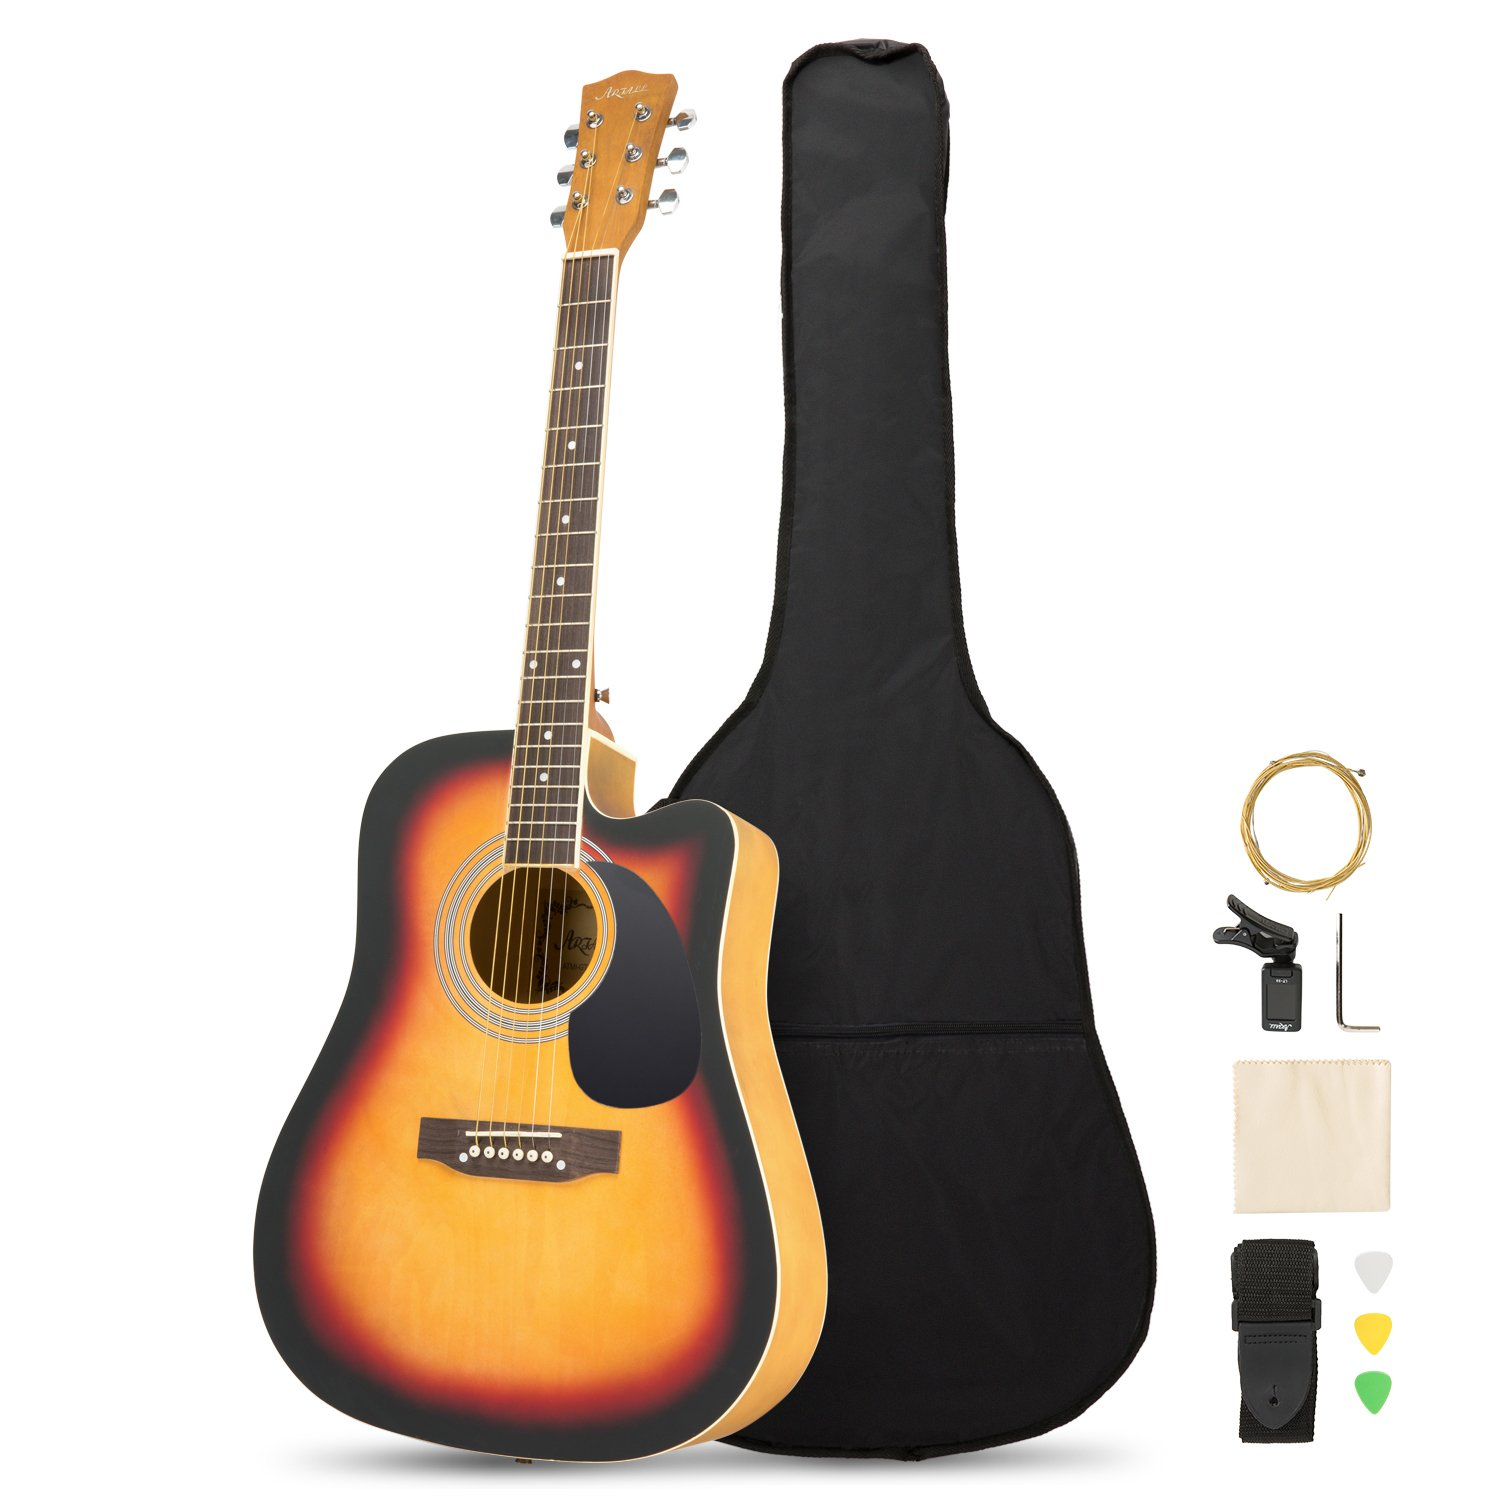 Artall 39 Inch Handmade Solid Wood Acoustic Cutaway Guitar Beginner Kit with Tuner, Strings, Picks, Strap, Matte Sunset